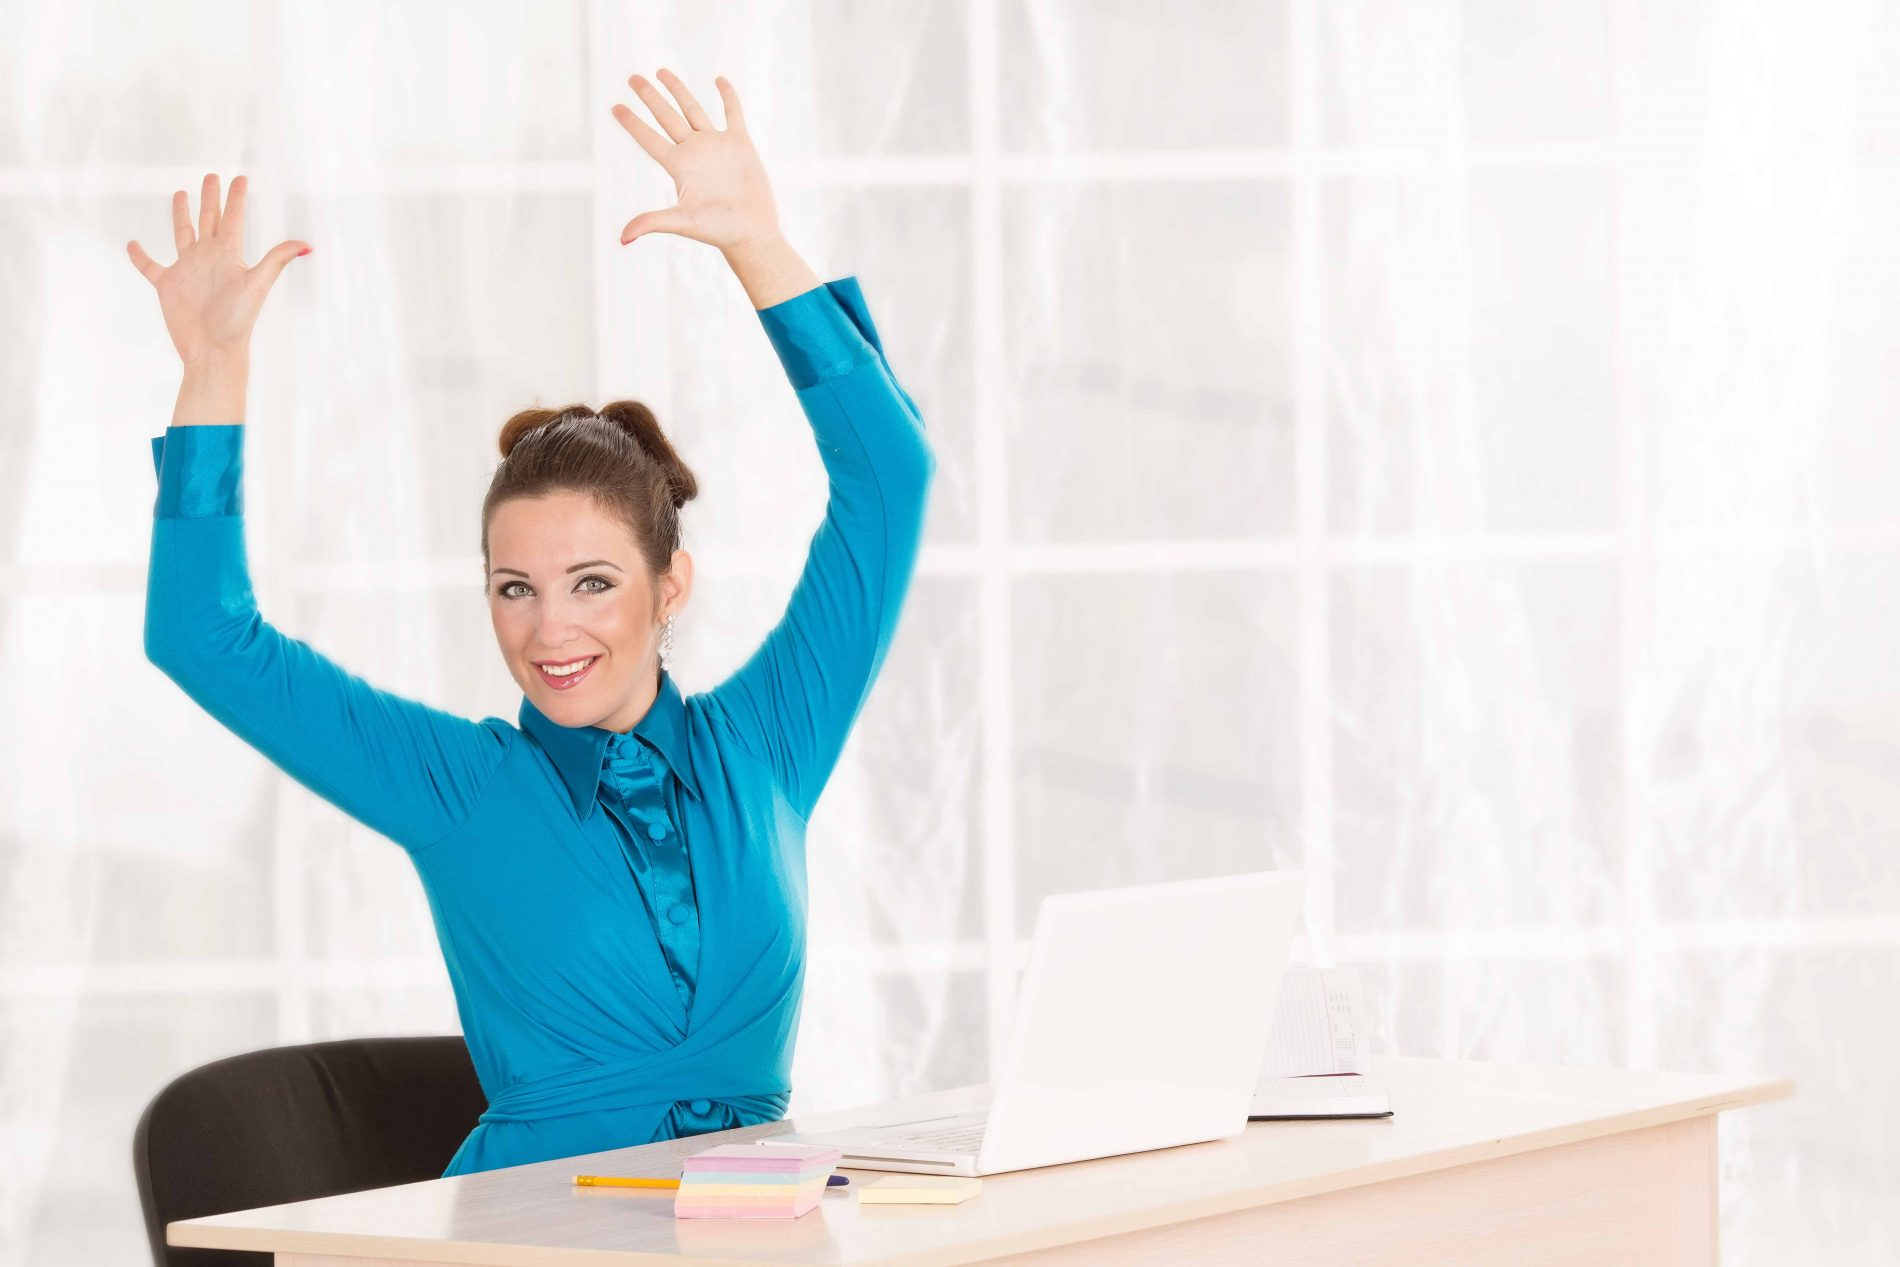 9 Desk Exercises You Should Be Doing Every Day